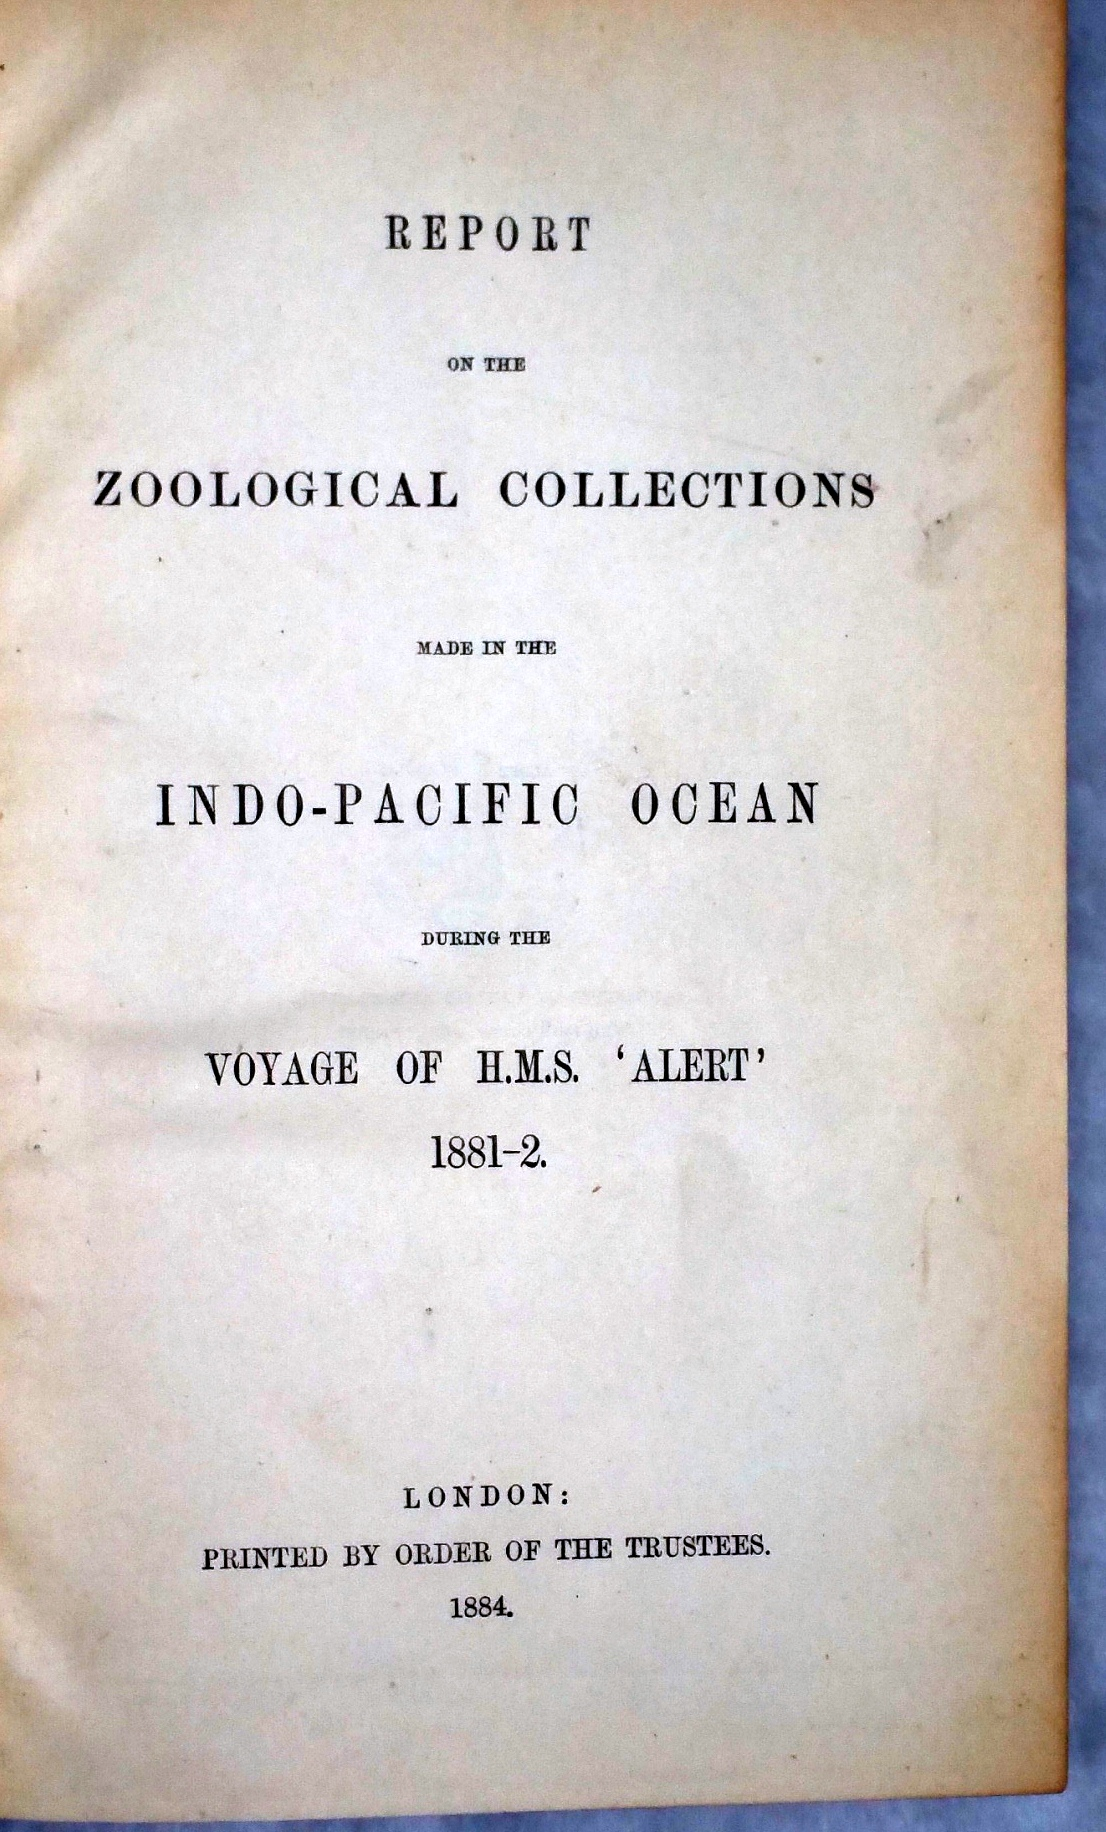 Image for Report on the Zoological Collections Made In The Indo-Pacific Ocean During the Voyage of H.M.S. 'Alert' 1881-2